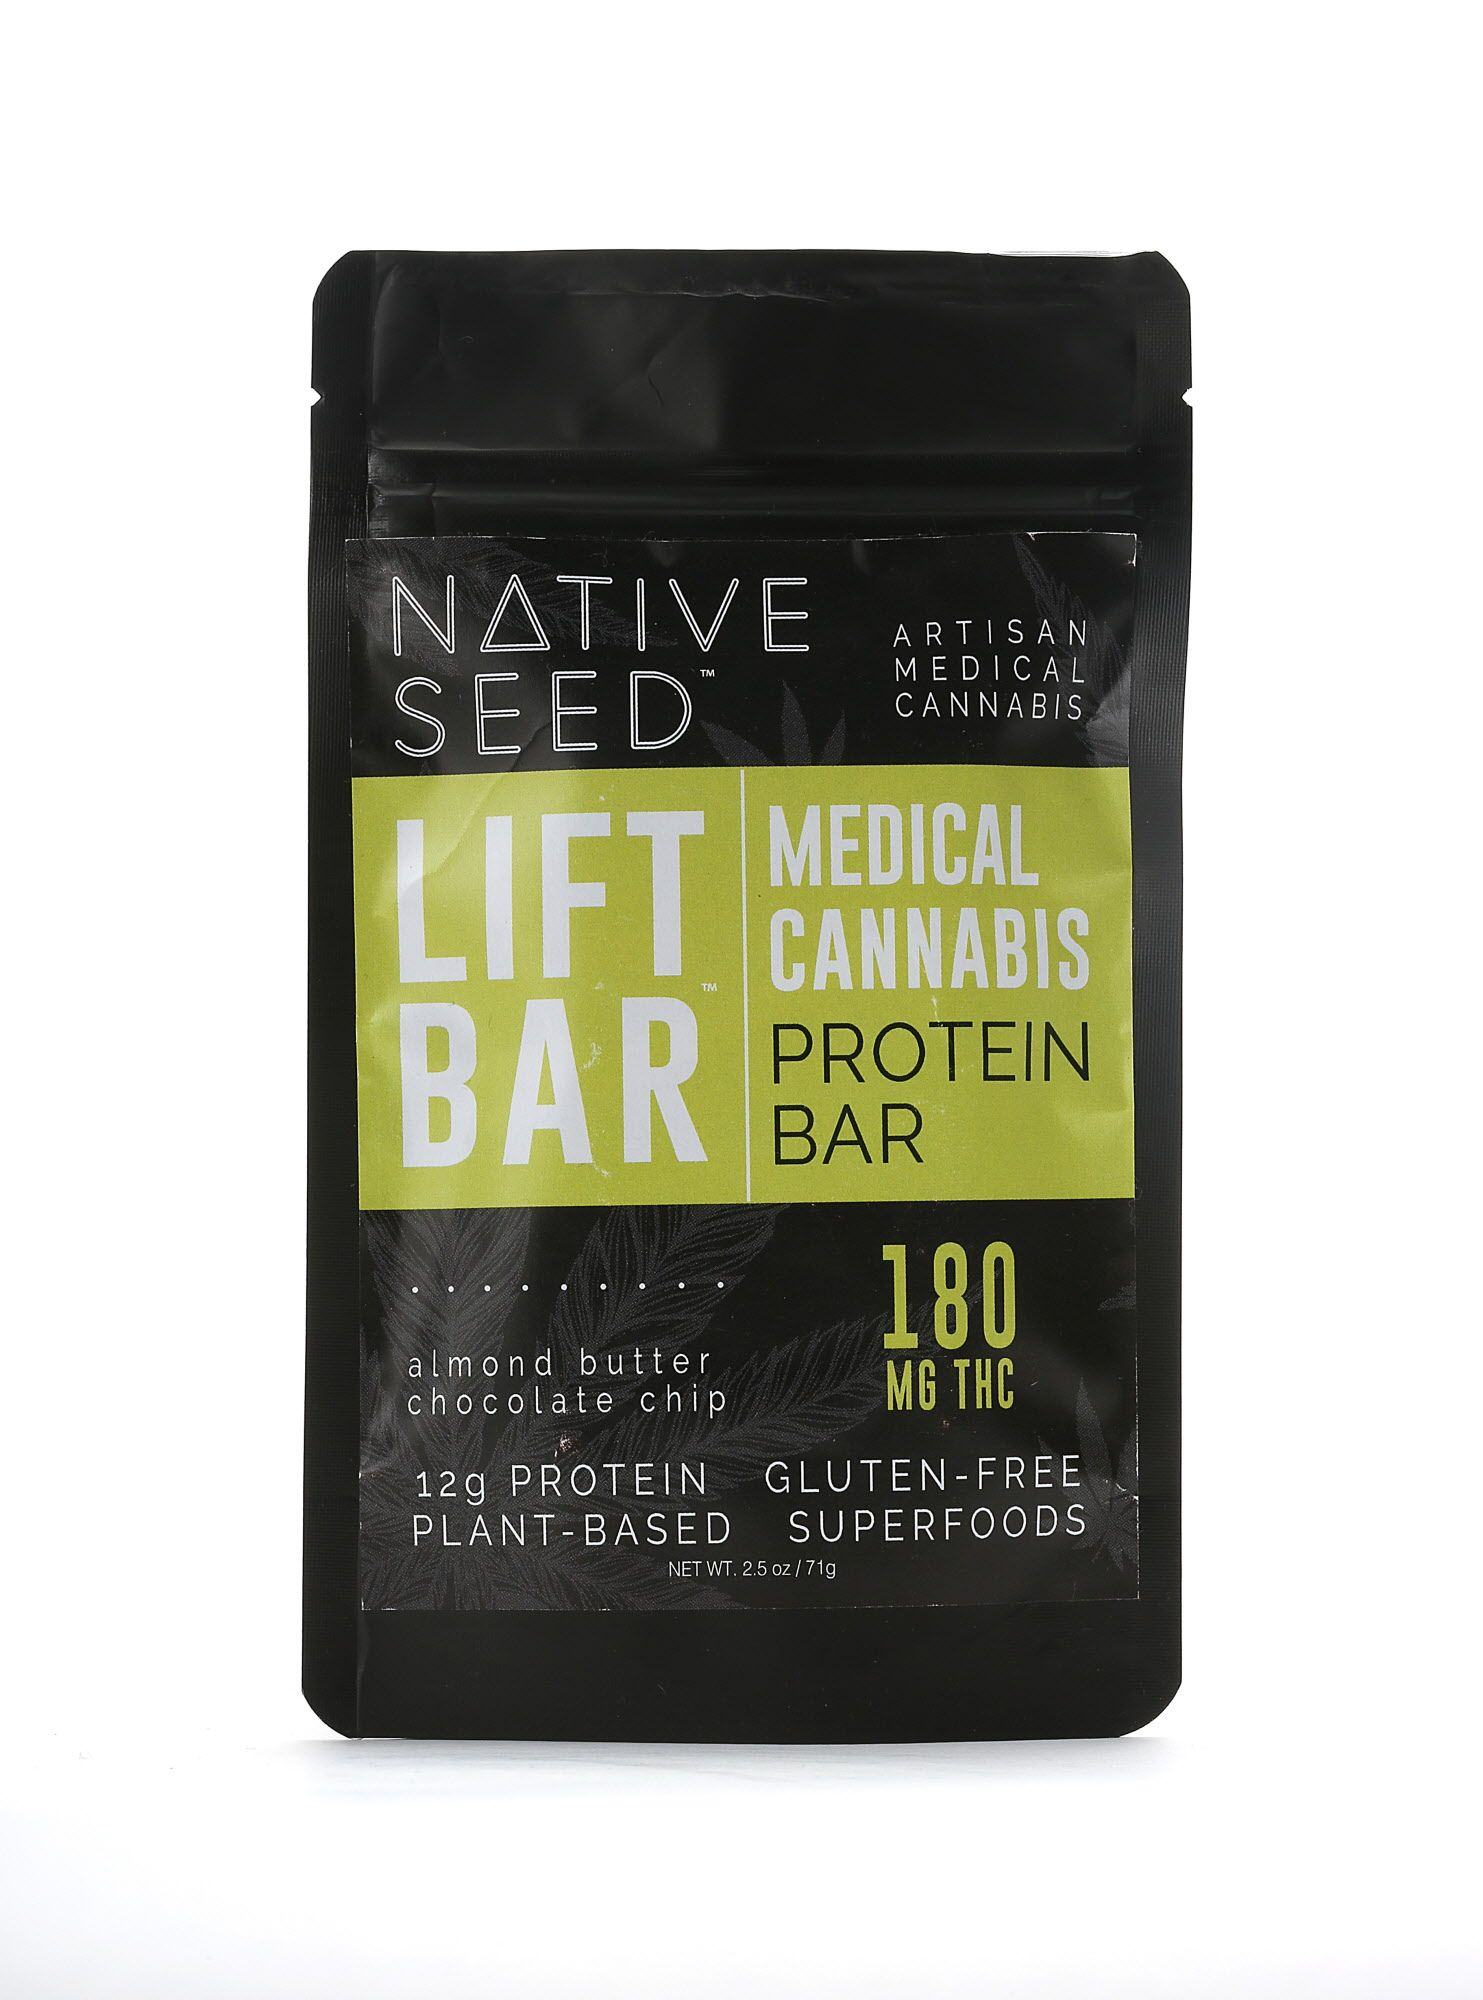 Native Seed lift bar, a medical cannabis protein bar, with 12 grams of plant based protein and 180mg thc on Monday, June 5, 2017, in San Francisco, Calif.